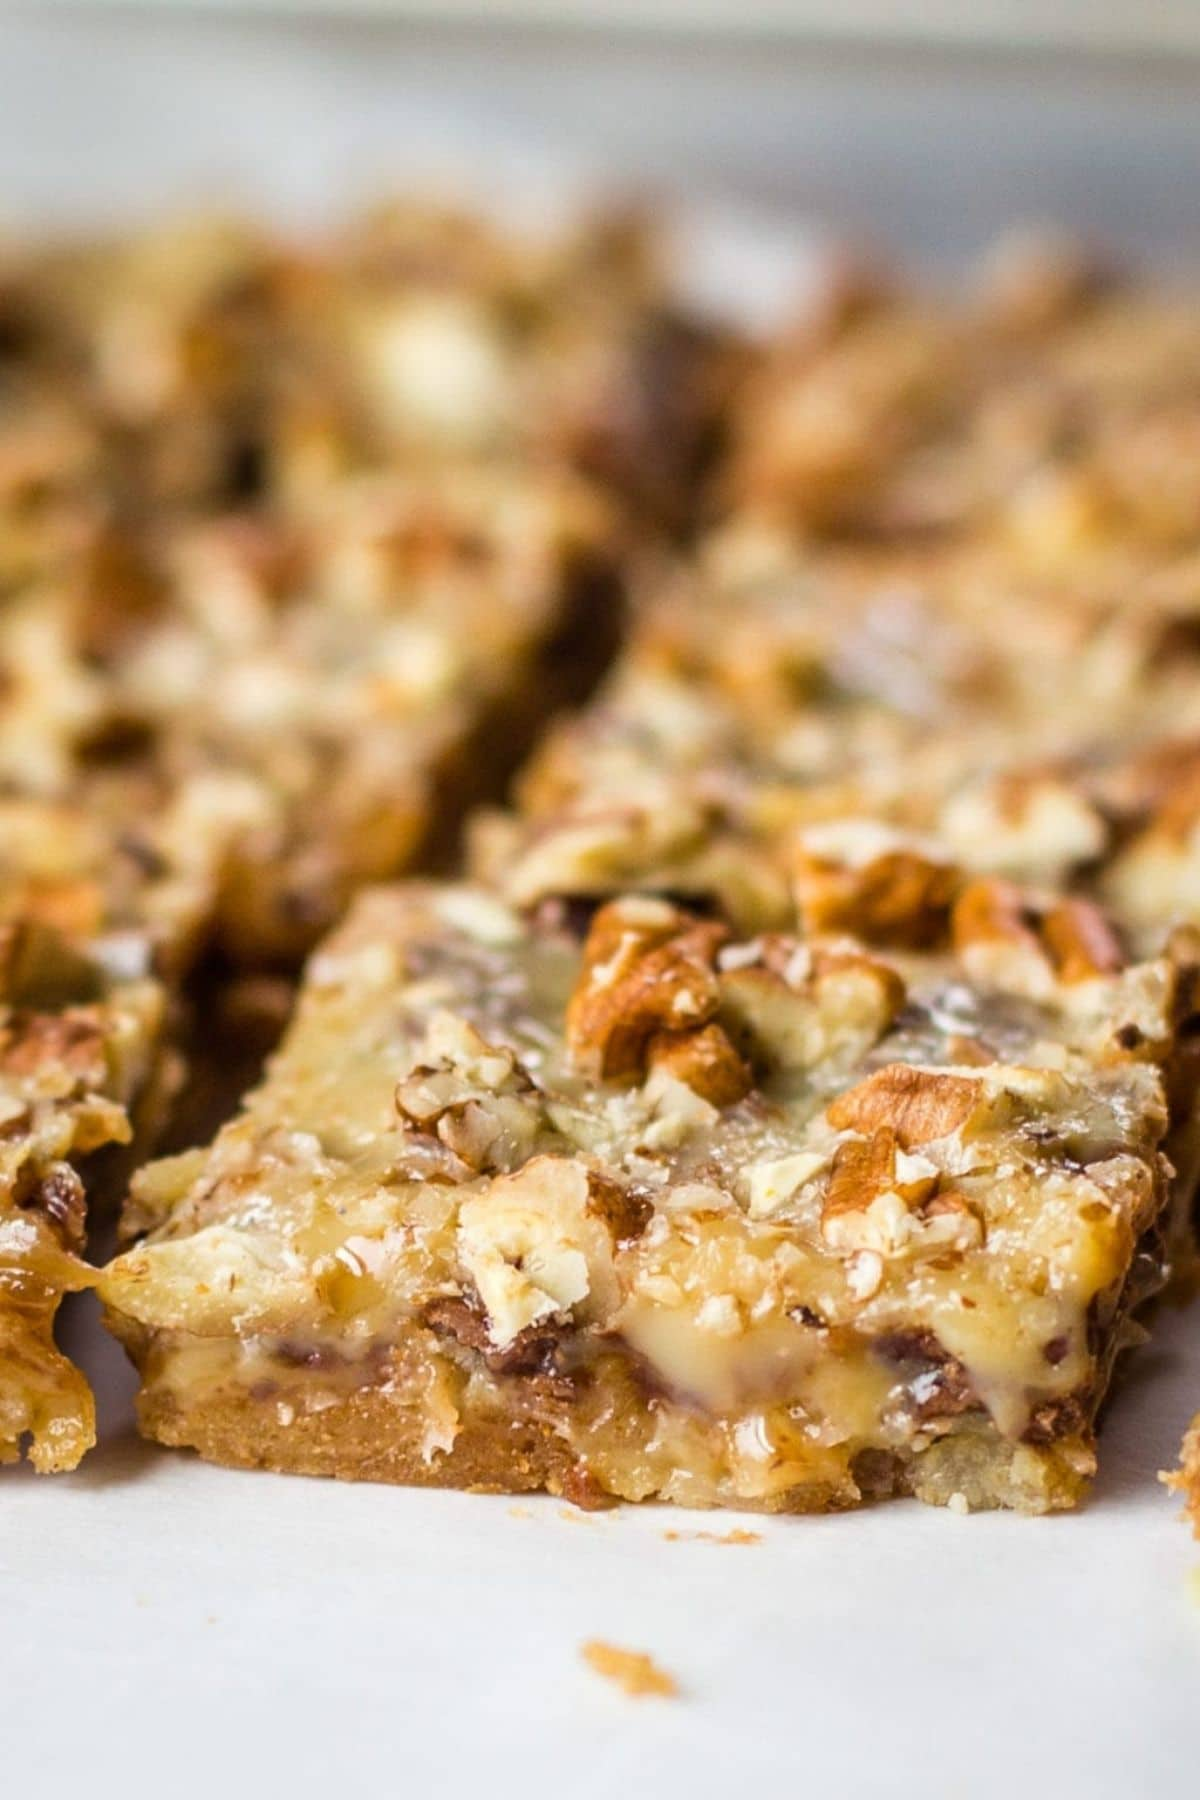 Close up of walnut toffee bars on plate